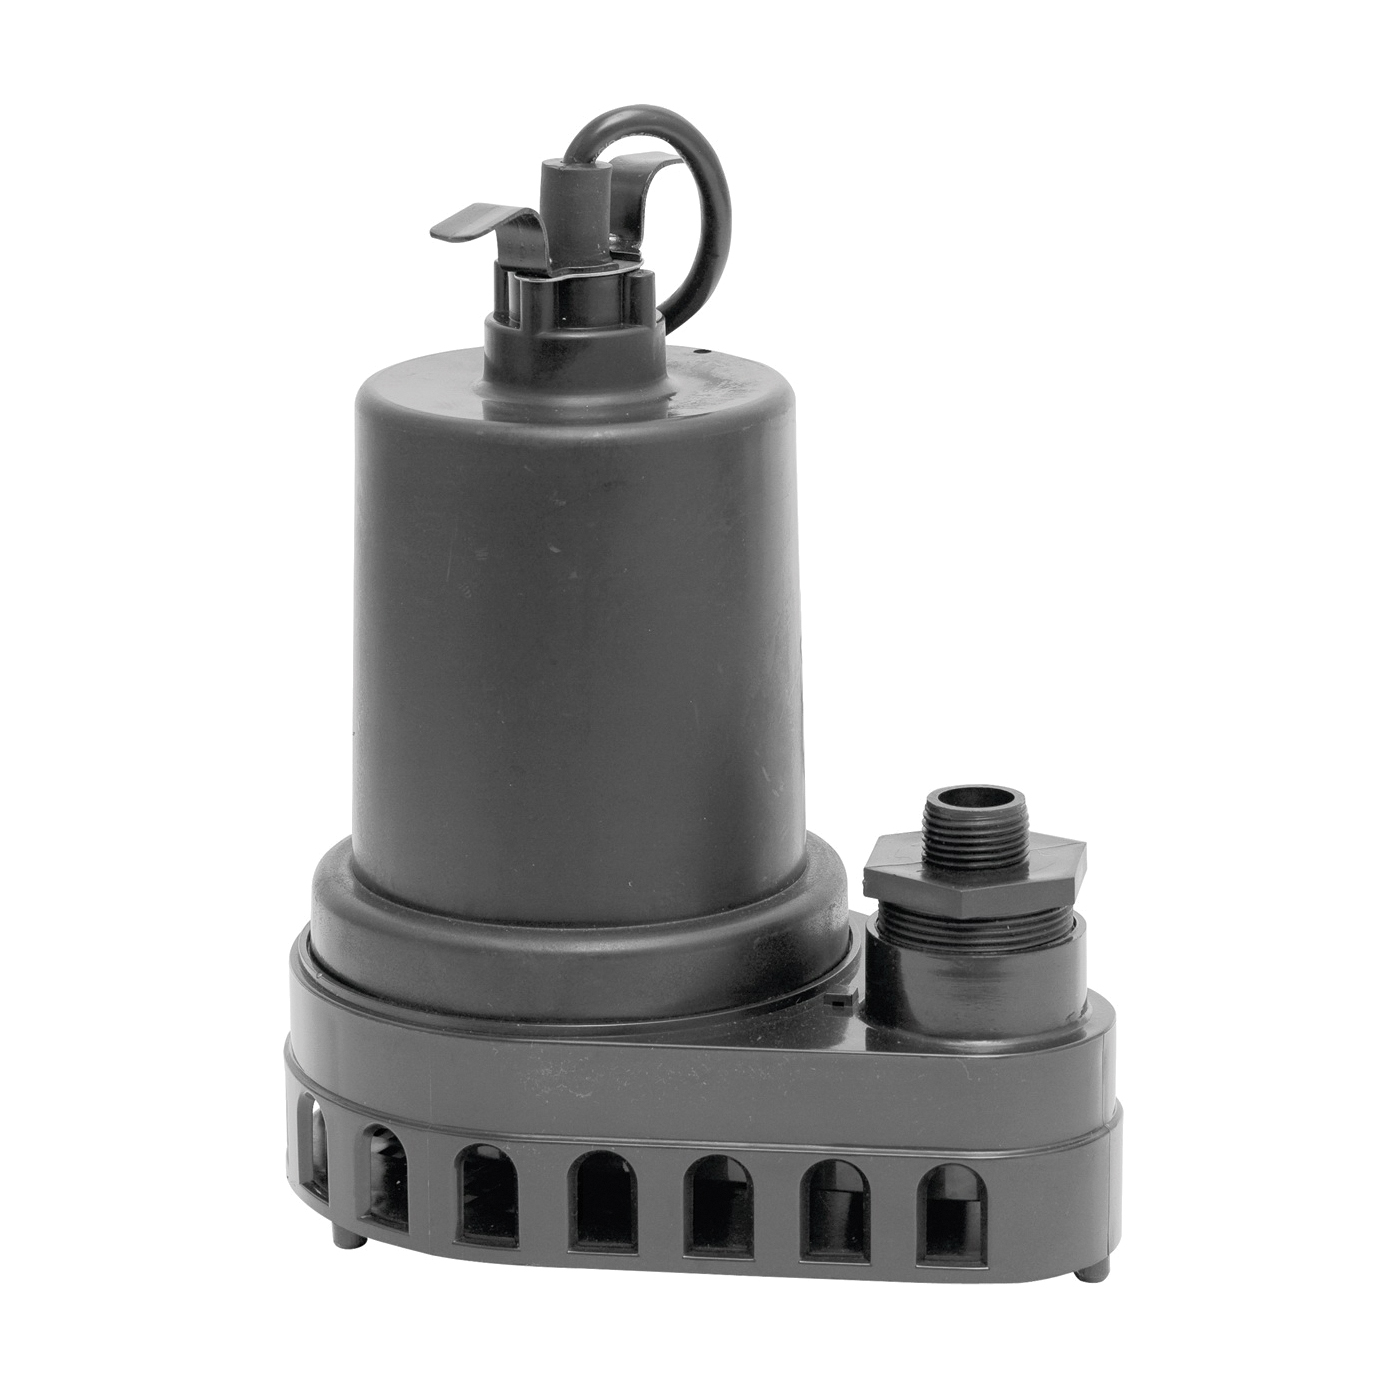 Picture of SUPERIOR PUMP 91570 Utility Pump, 4.9 A, 120 V, 0.5 hp, 1-1/2 in Outlet, 55 gpm, Thermoplastic Impeller